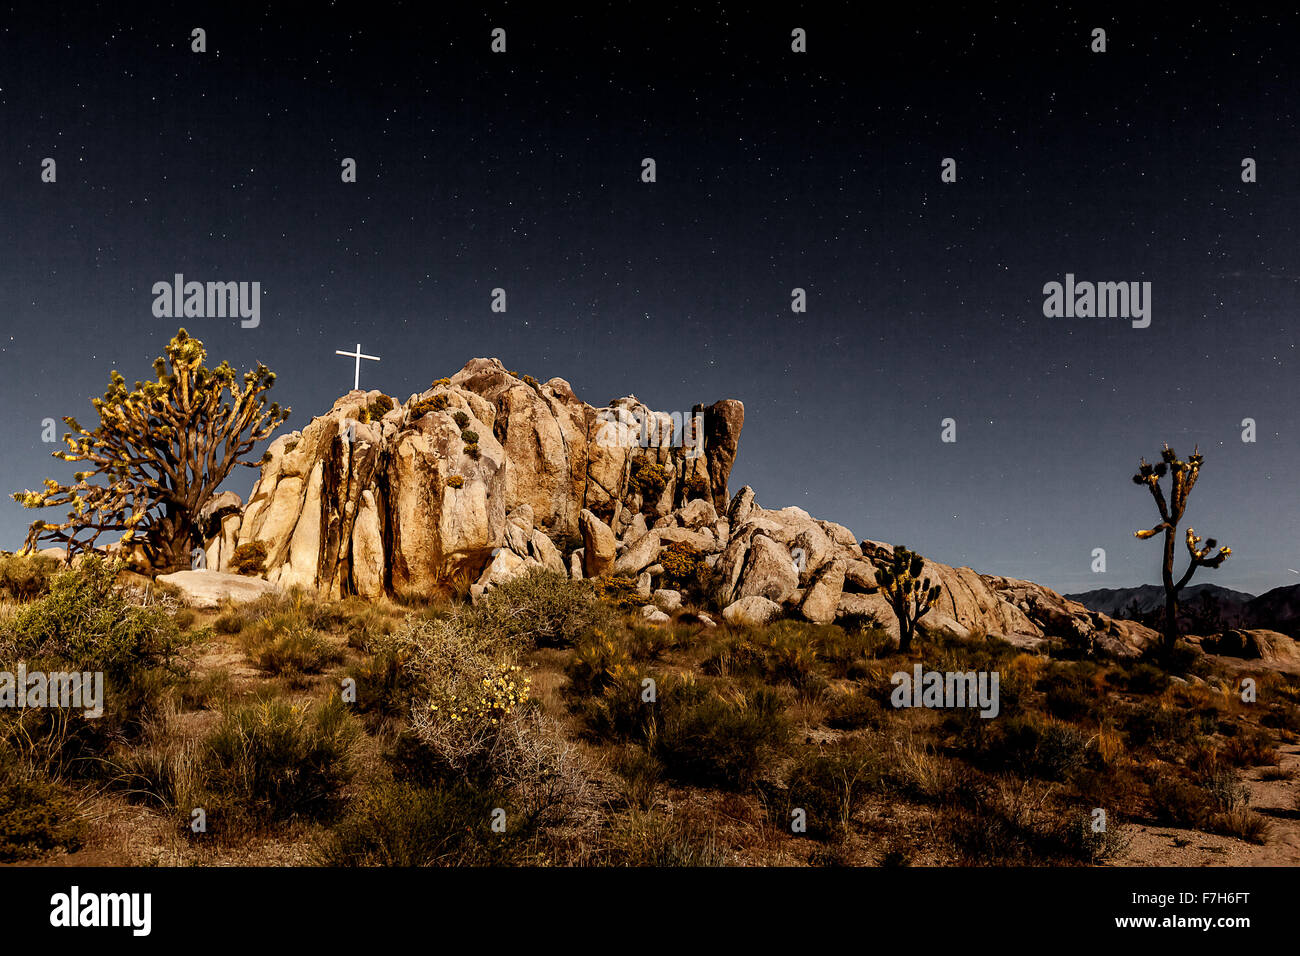 WWI Memorial shines in the moonlight - Stock Image